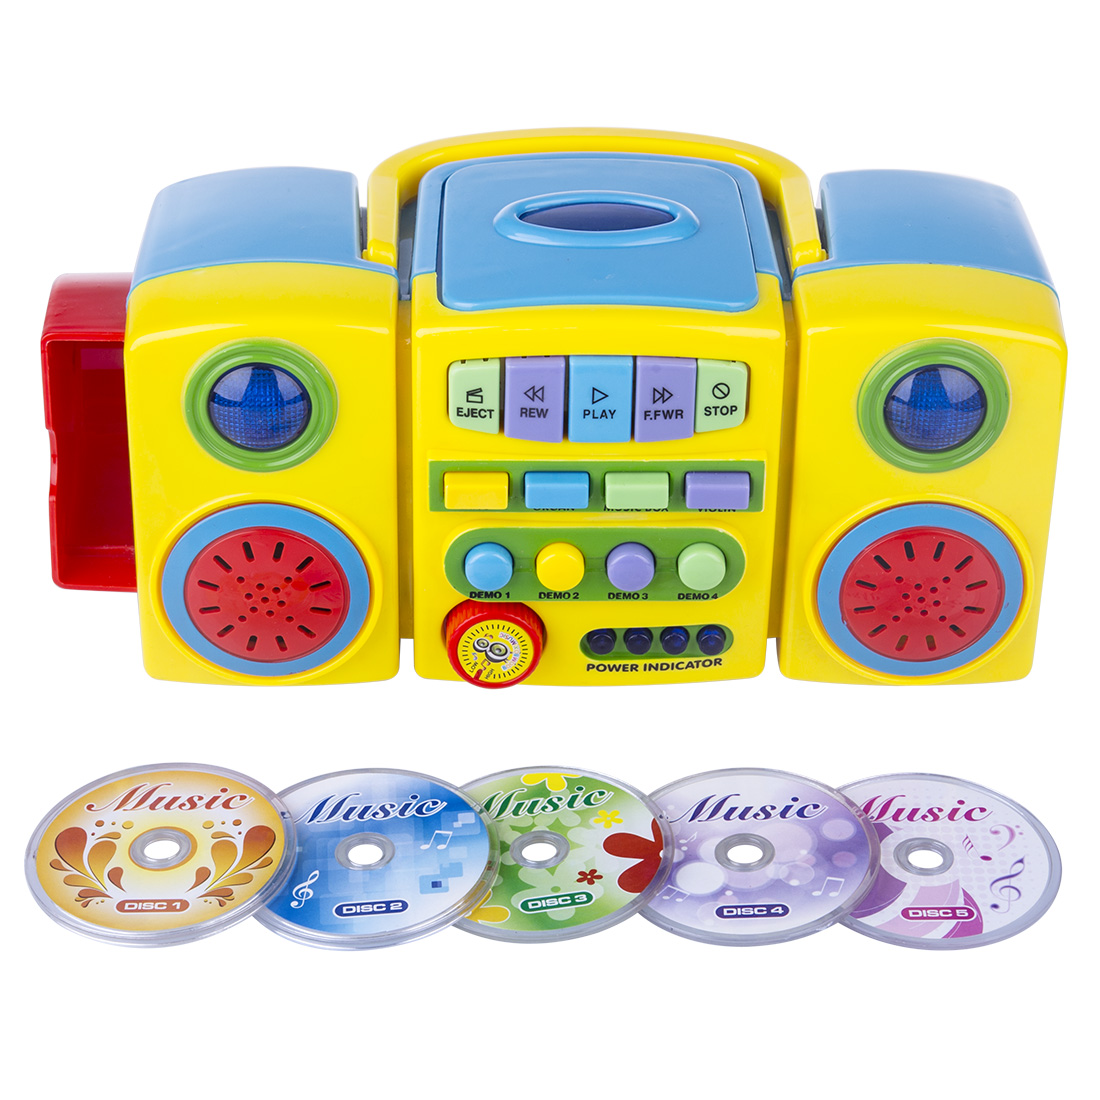 Kids CD Player Learning Player Educational Musical Toy 2020 New  Toys For Kids Birthdaty Gifts